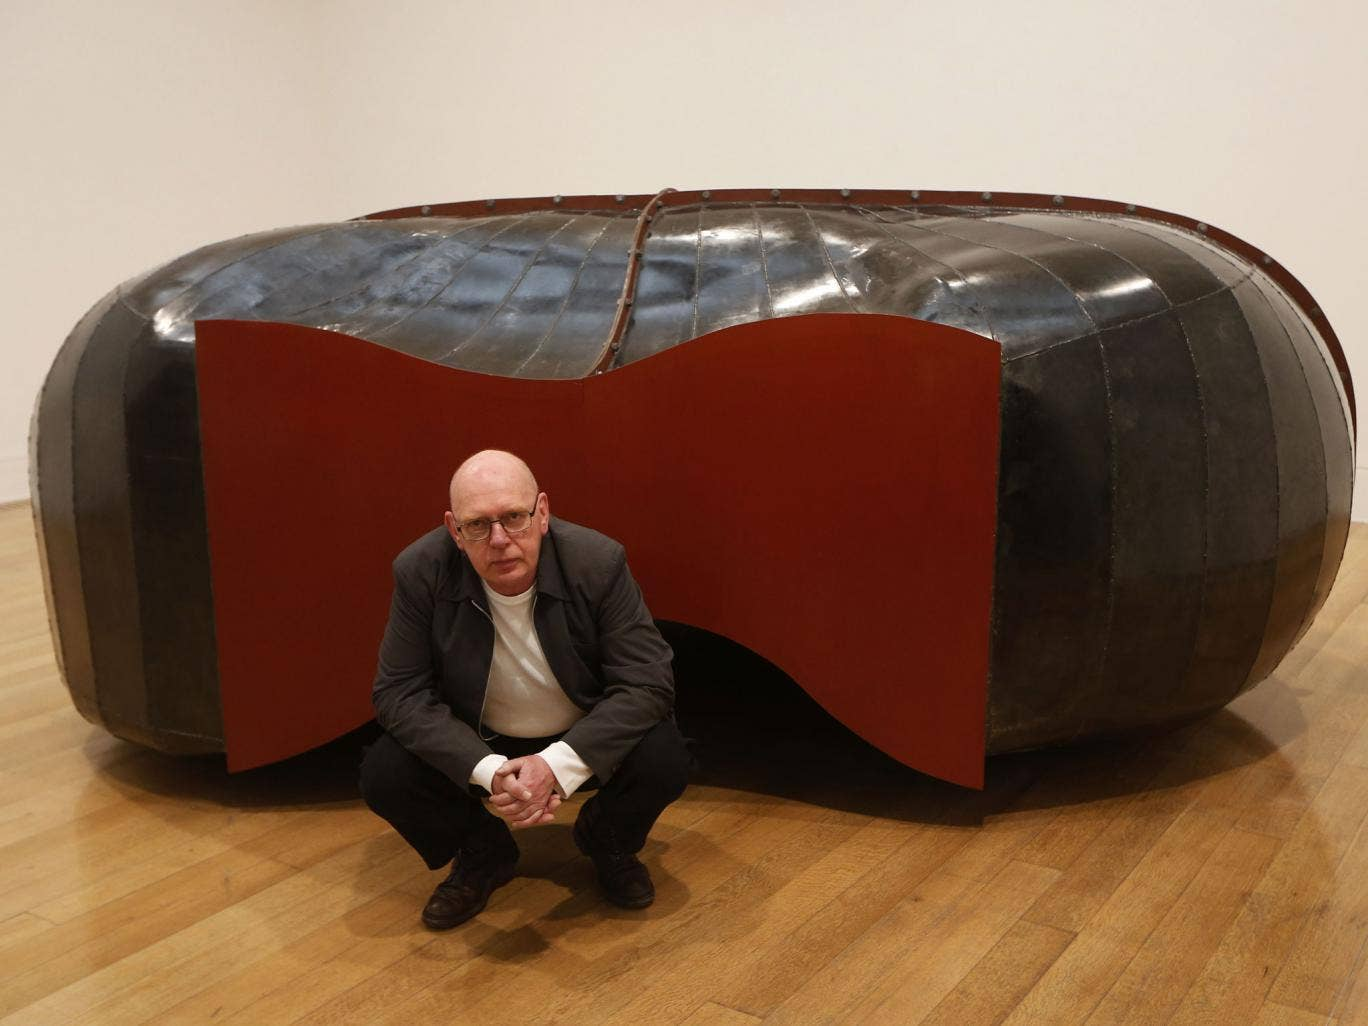 British artist and Turner Prize winner Richard Deacon poses with his sculpture 'Struck Dumb 1988' at Tate Britain